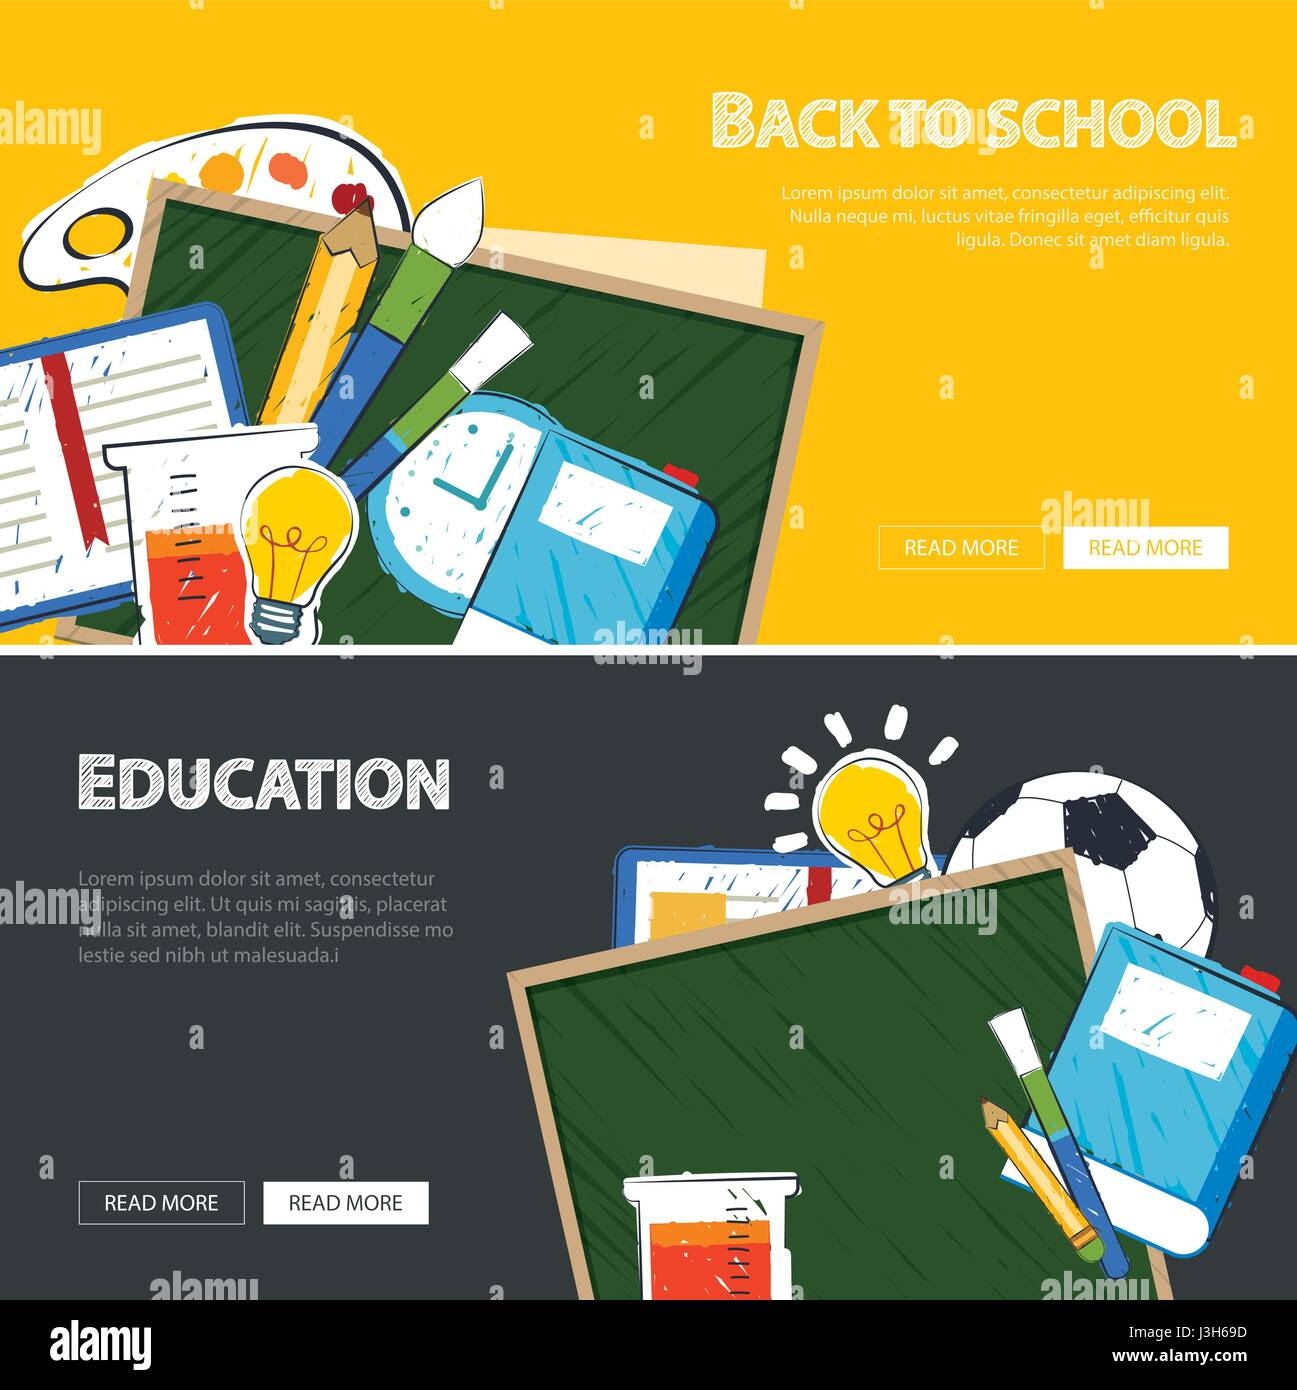 education banner and back to school background template - Stock Image